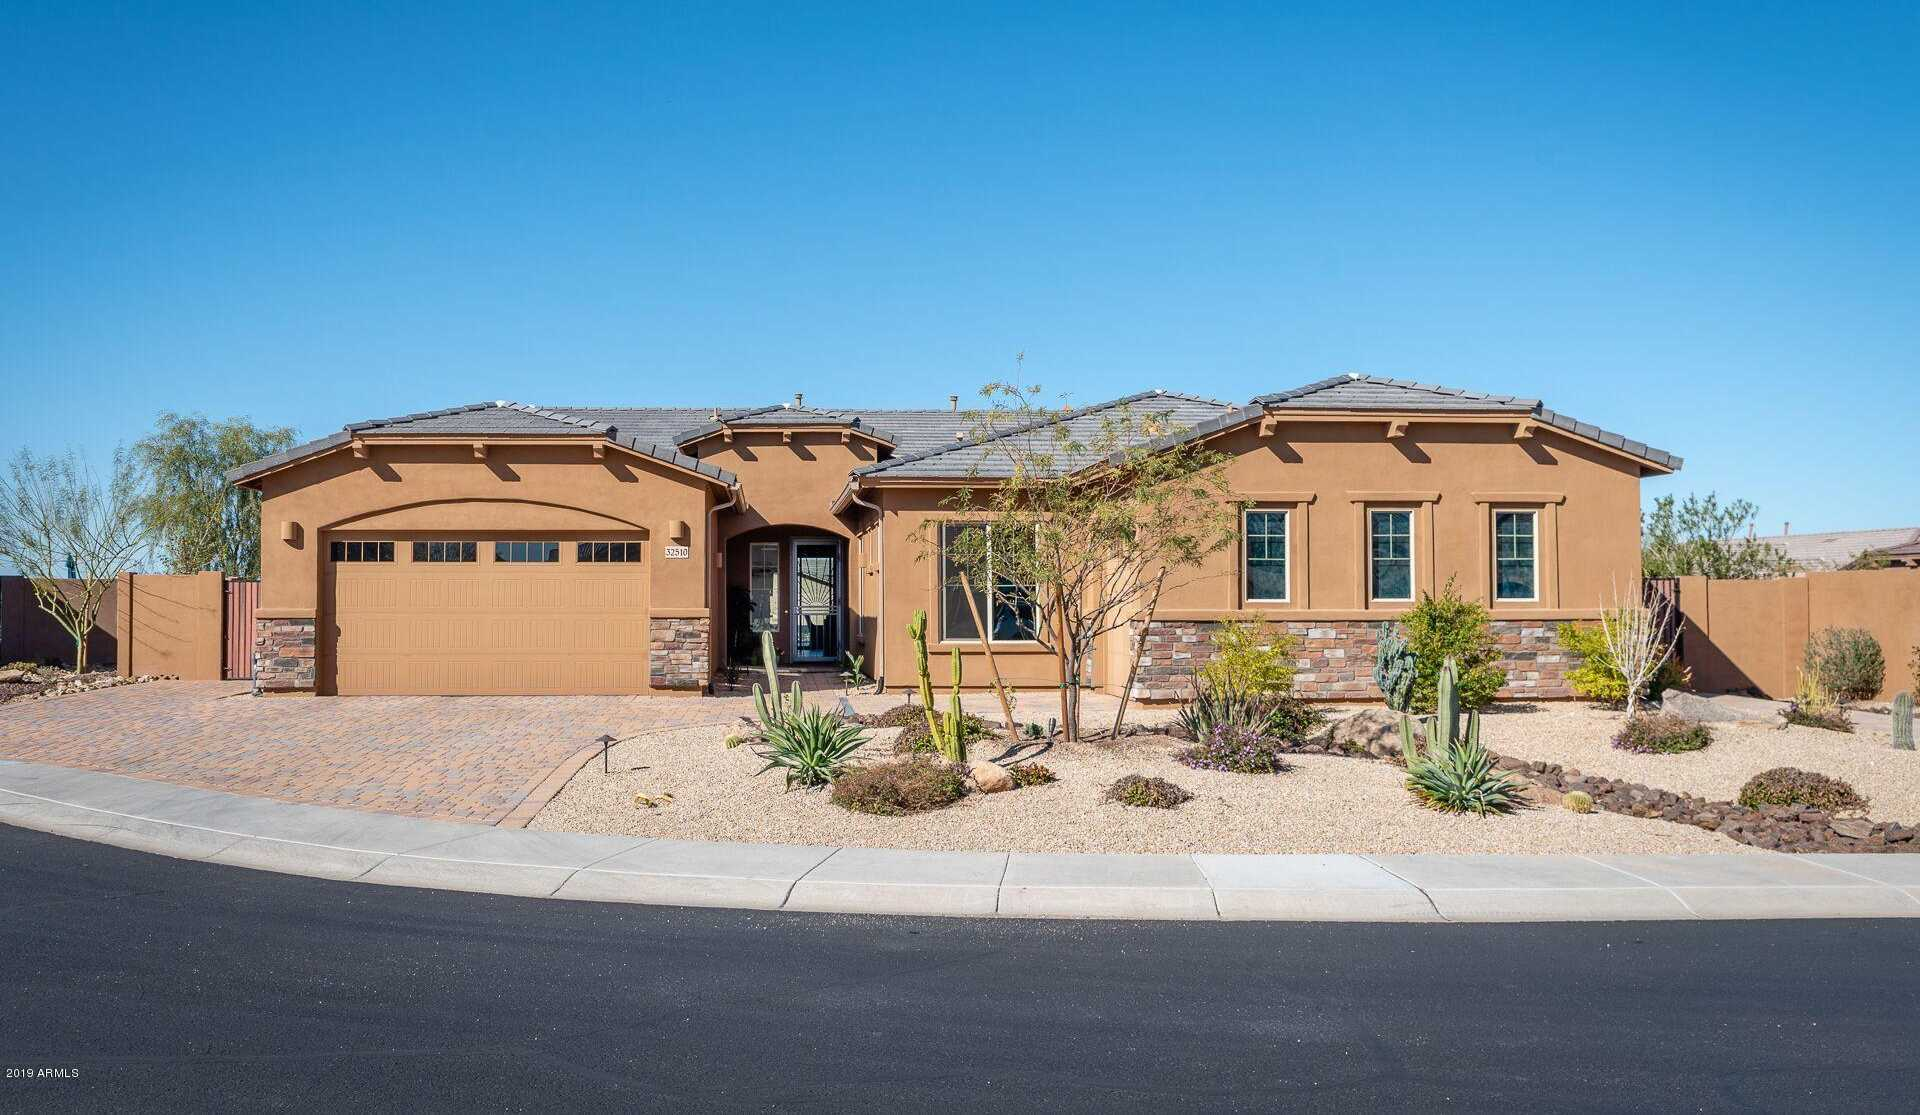 $875,000 - 5Br/4Ba - Home for Sale in Lone Mountain, Cave Creek